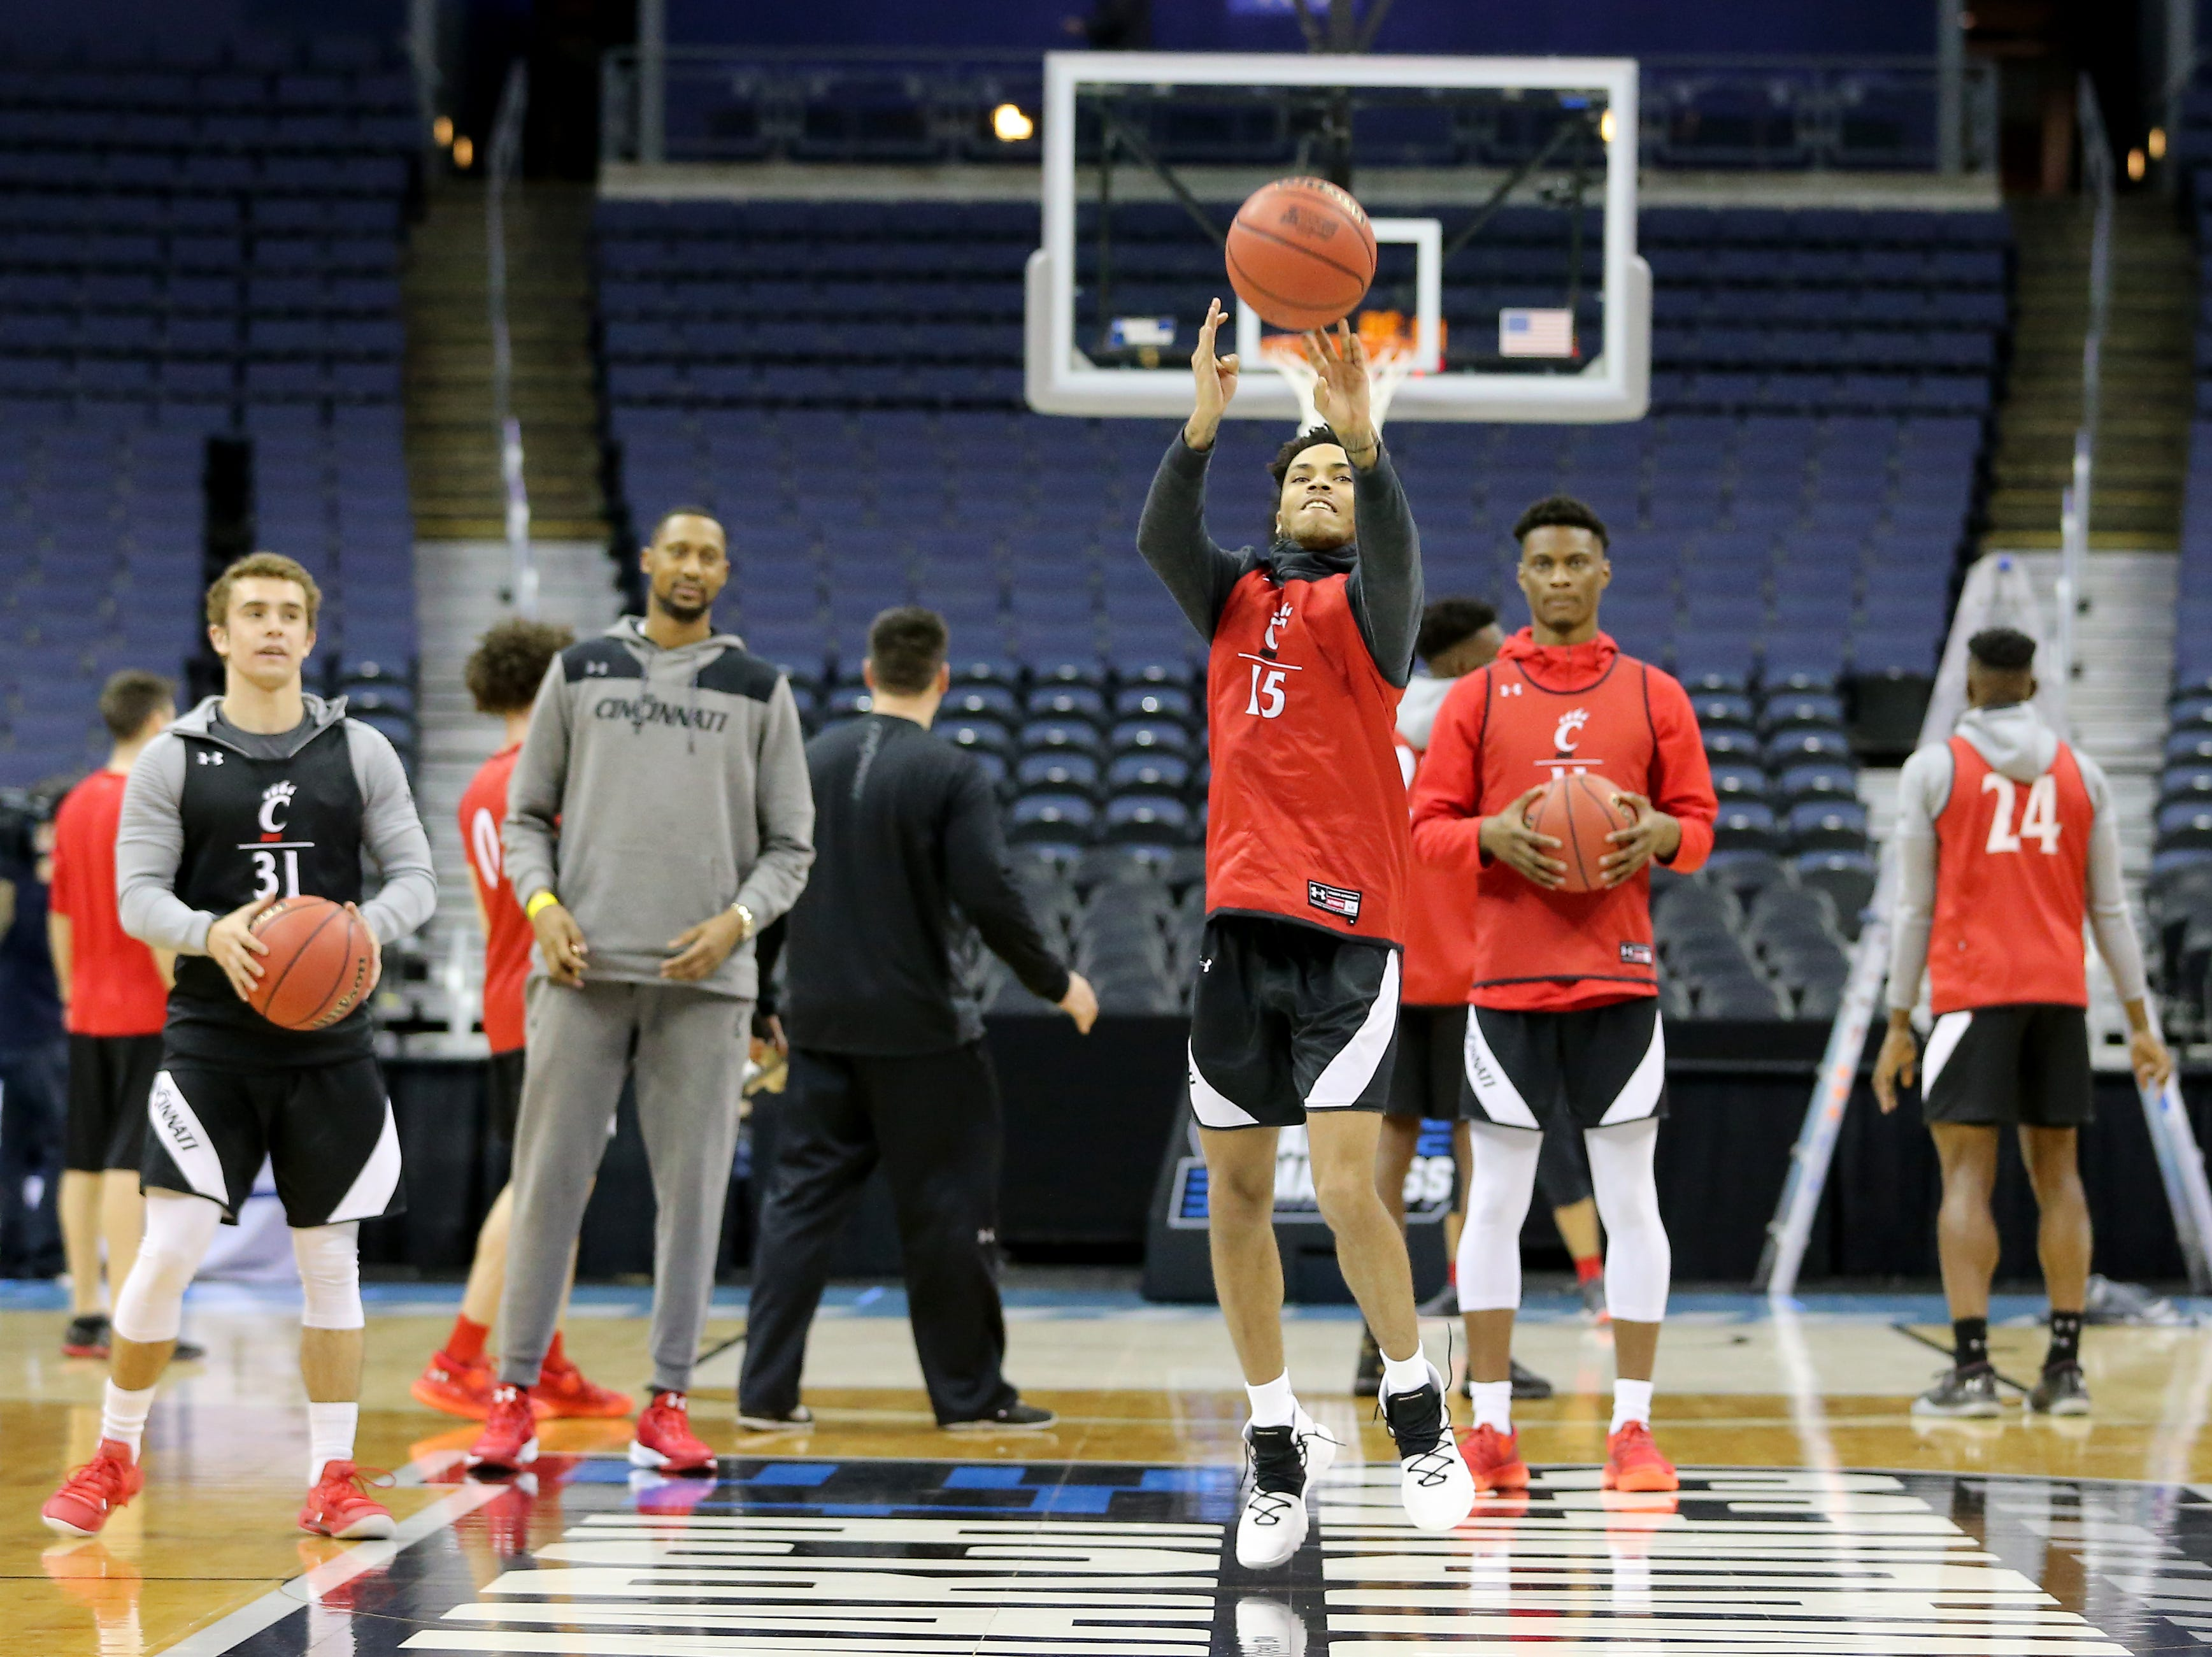 Cincinnati Bearcats guard Cane Broome (15) takes a half-court shot open practice, Thursday, March 21, 2019, at Nationwide Arena in Columbus, Ohio.